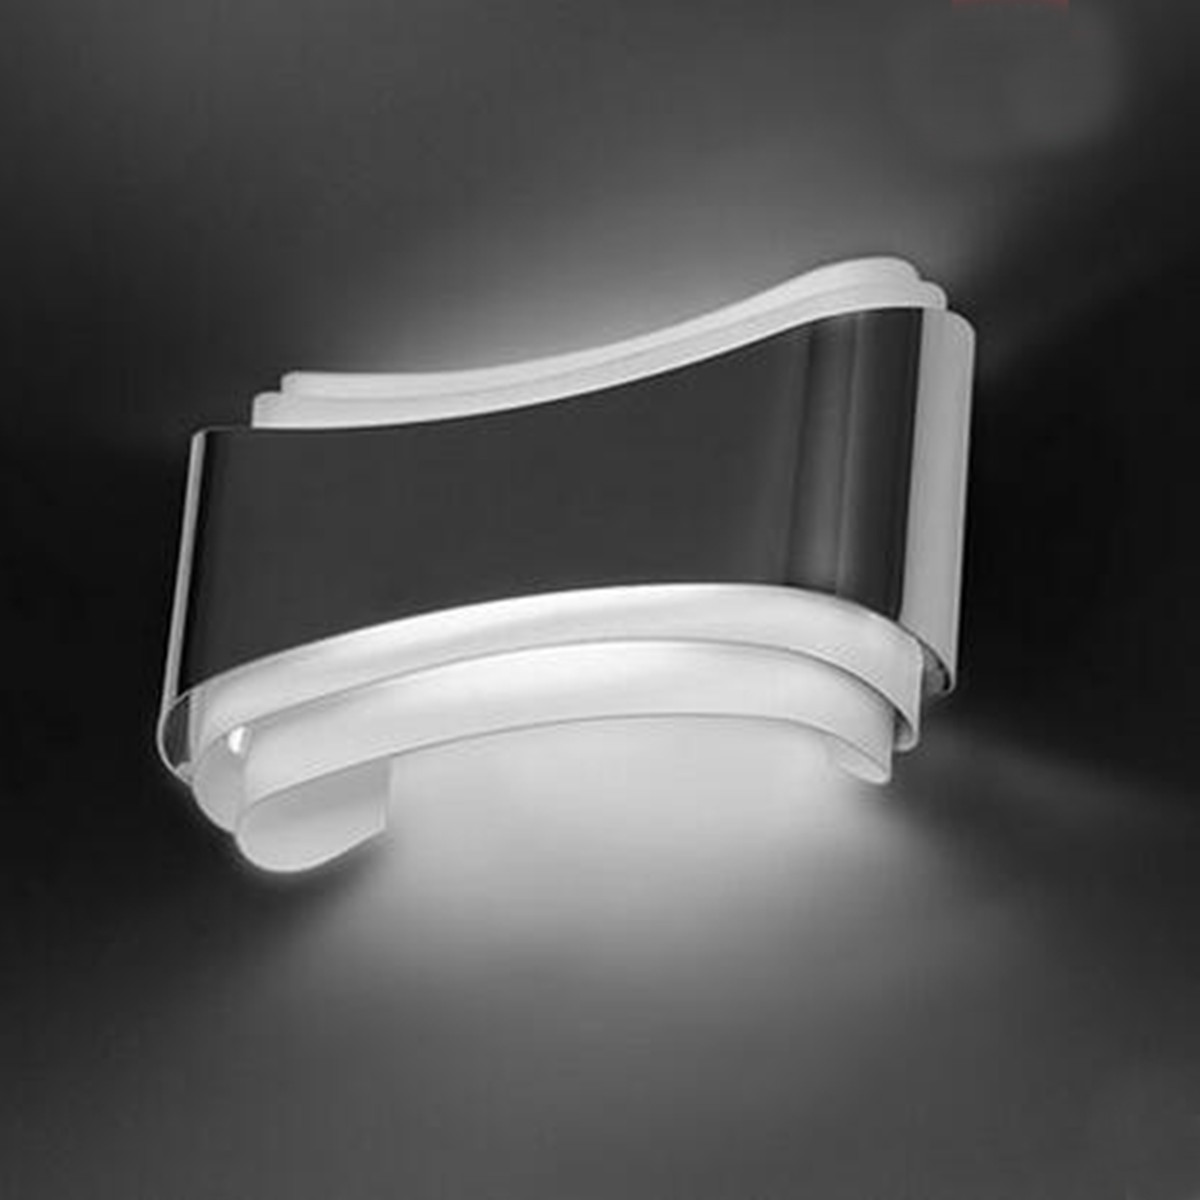 Led Light Enclosed Fixture: Modern LED Wall Light Up Down Lamp Sconce Fixture Cube